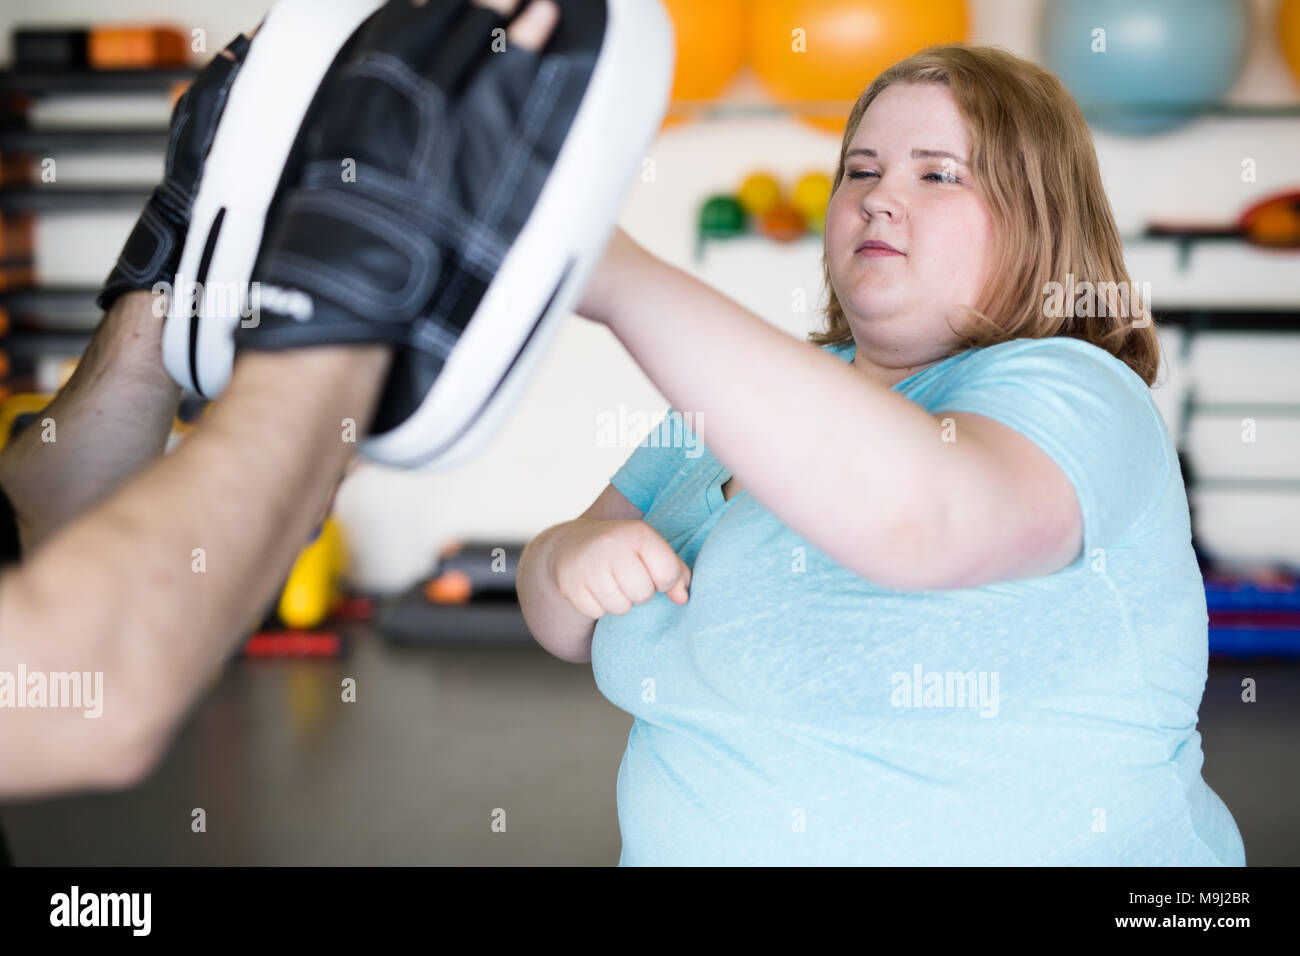 Obese Woman in Boxing Practice - Stock Image